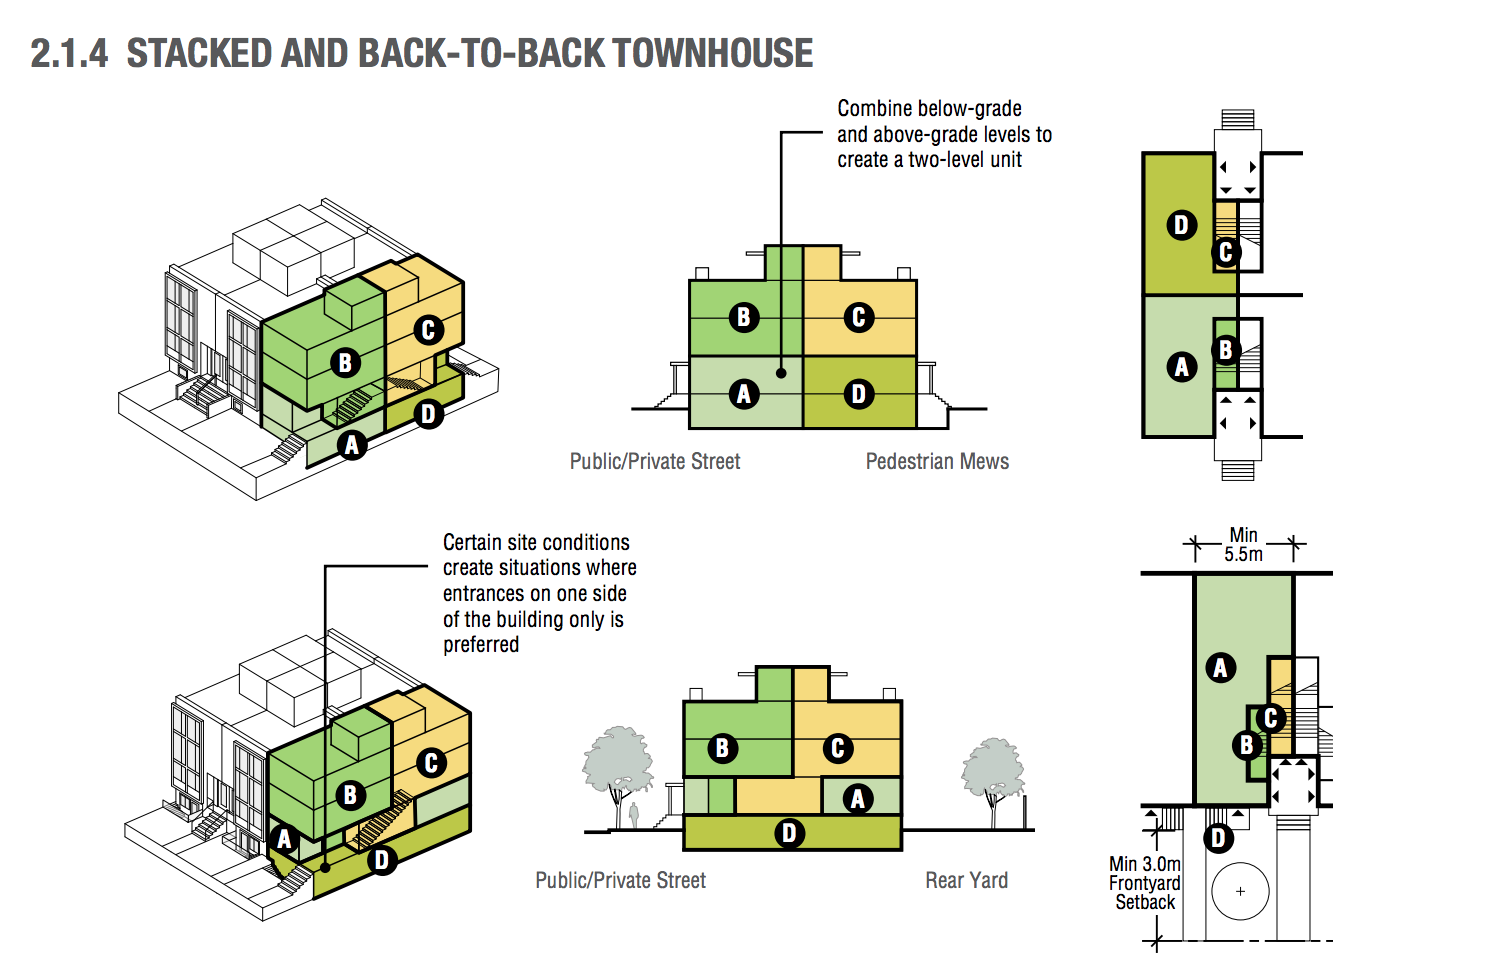 Credit:   City of Toronto Townhouse Guidelines